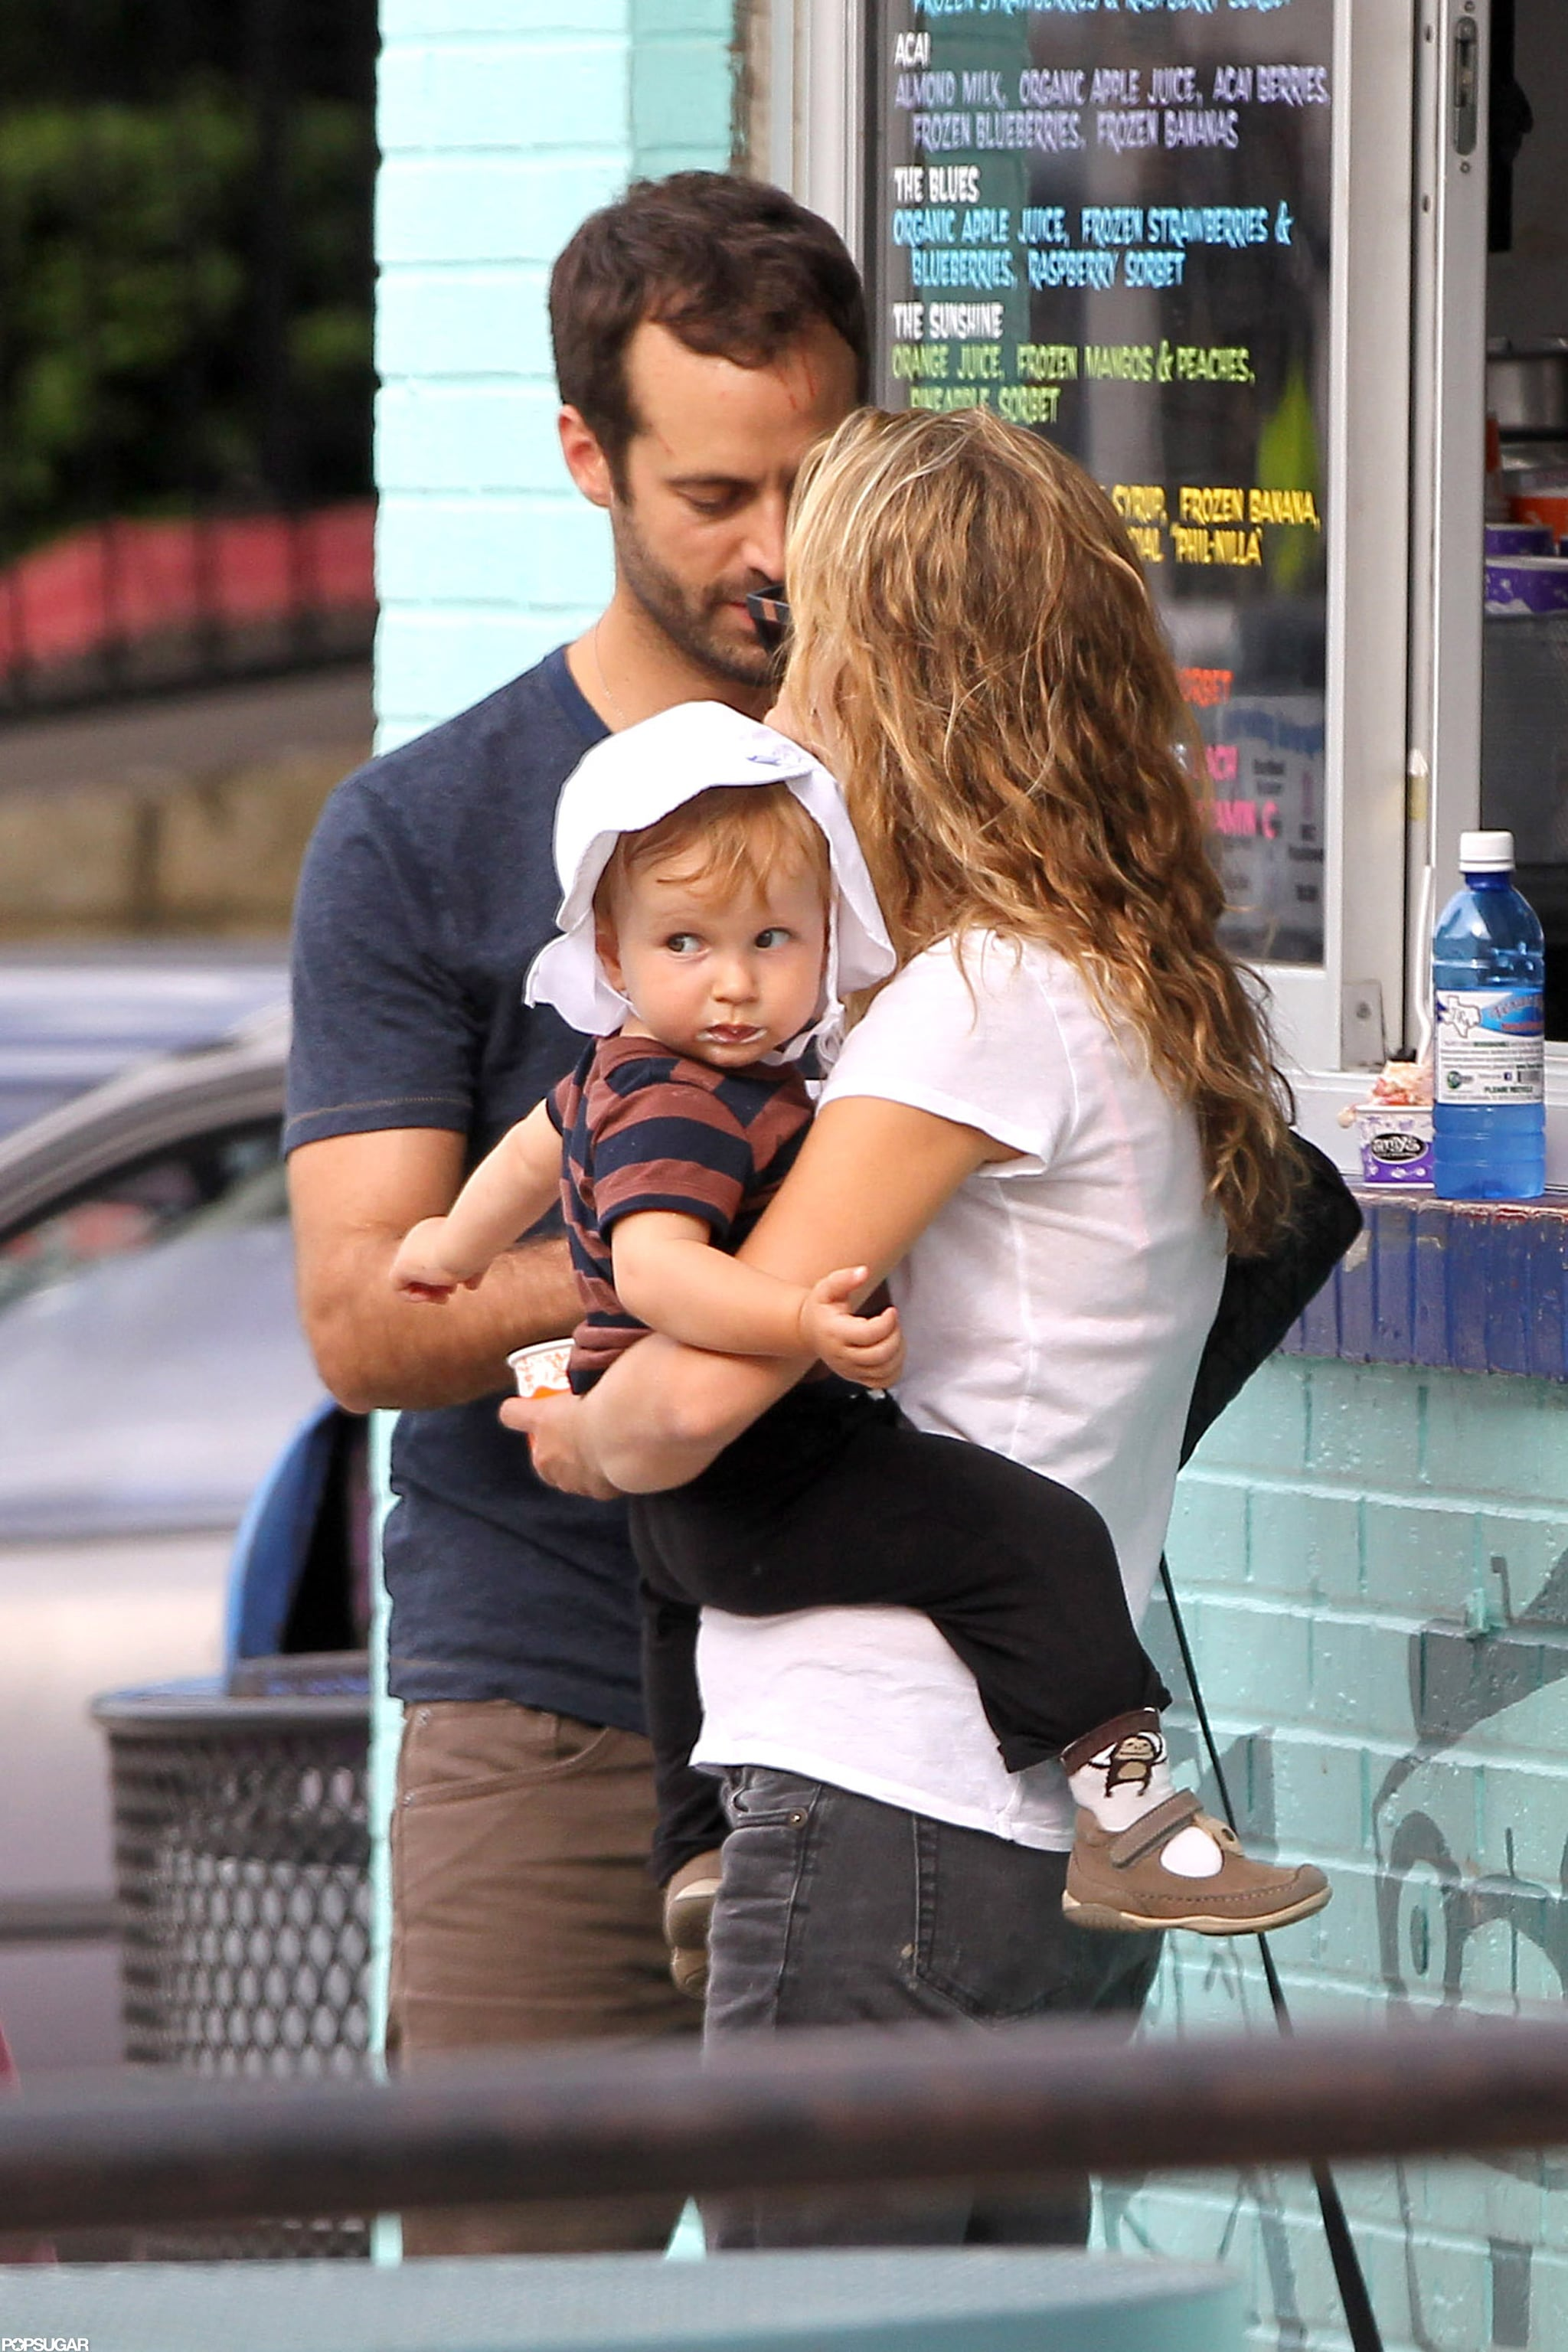 Natalie Portman And Benjamin Millepied Got Ice Cream With Their Son Natalie Portman And Baby Aleph Cool Off With A Sweet Texas Treat Popsugar Celebrity Photo 6